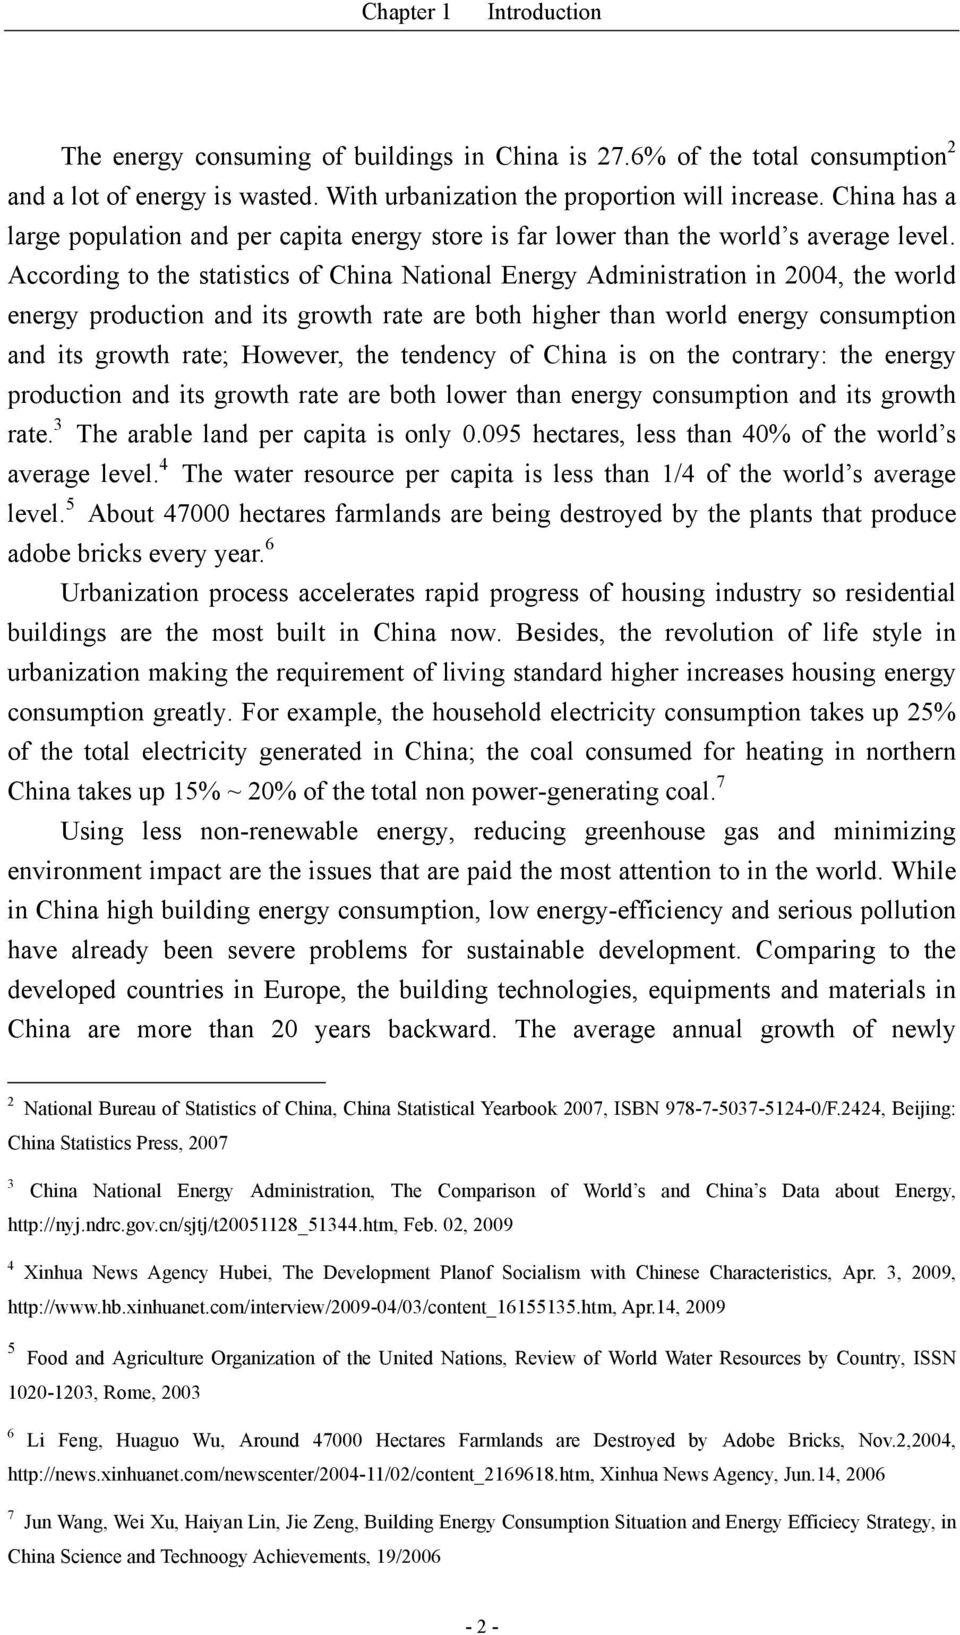 According to the statistics of China National Energy Administration in 2004, the world energy production and its growth rate are both higher than world energy consumption and its growth rate;